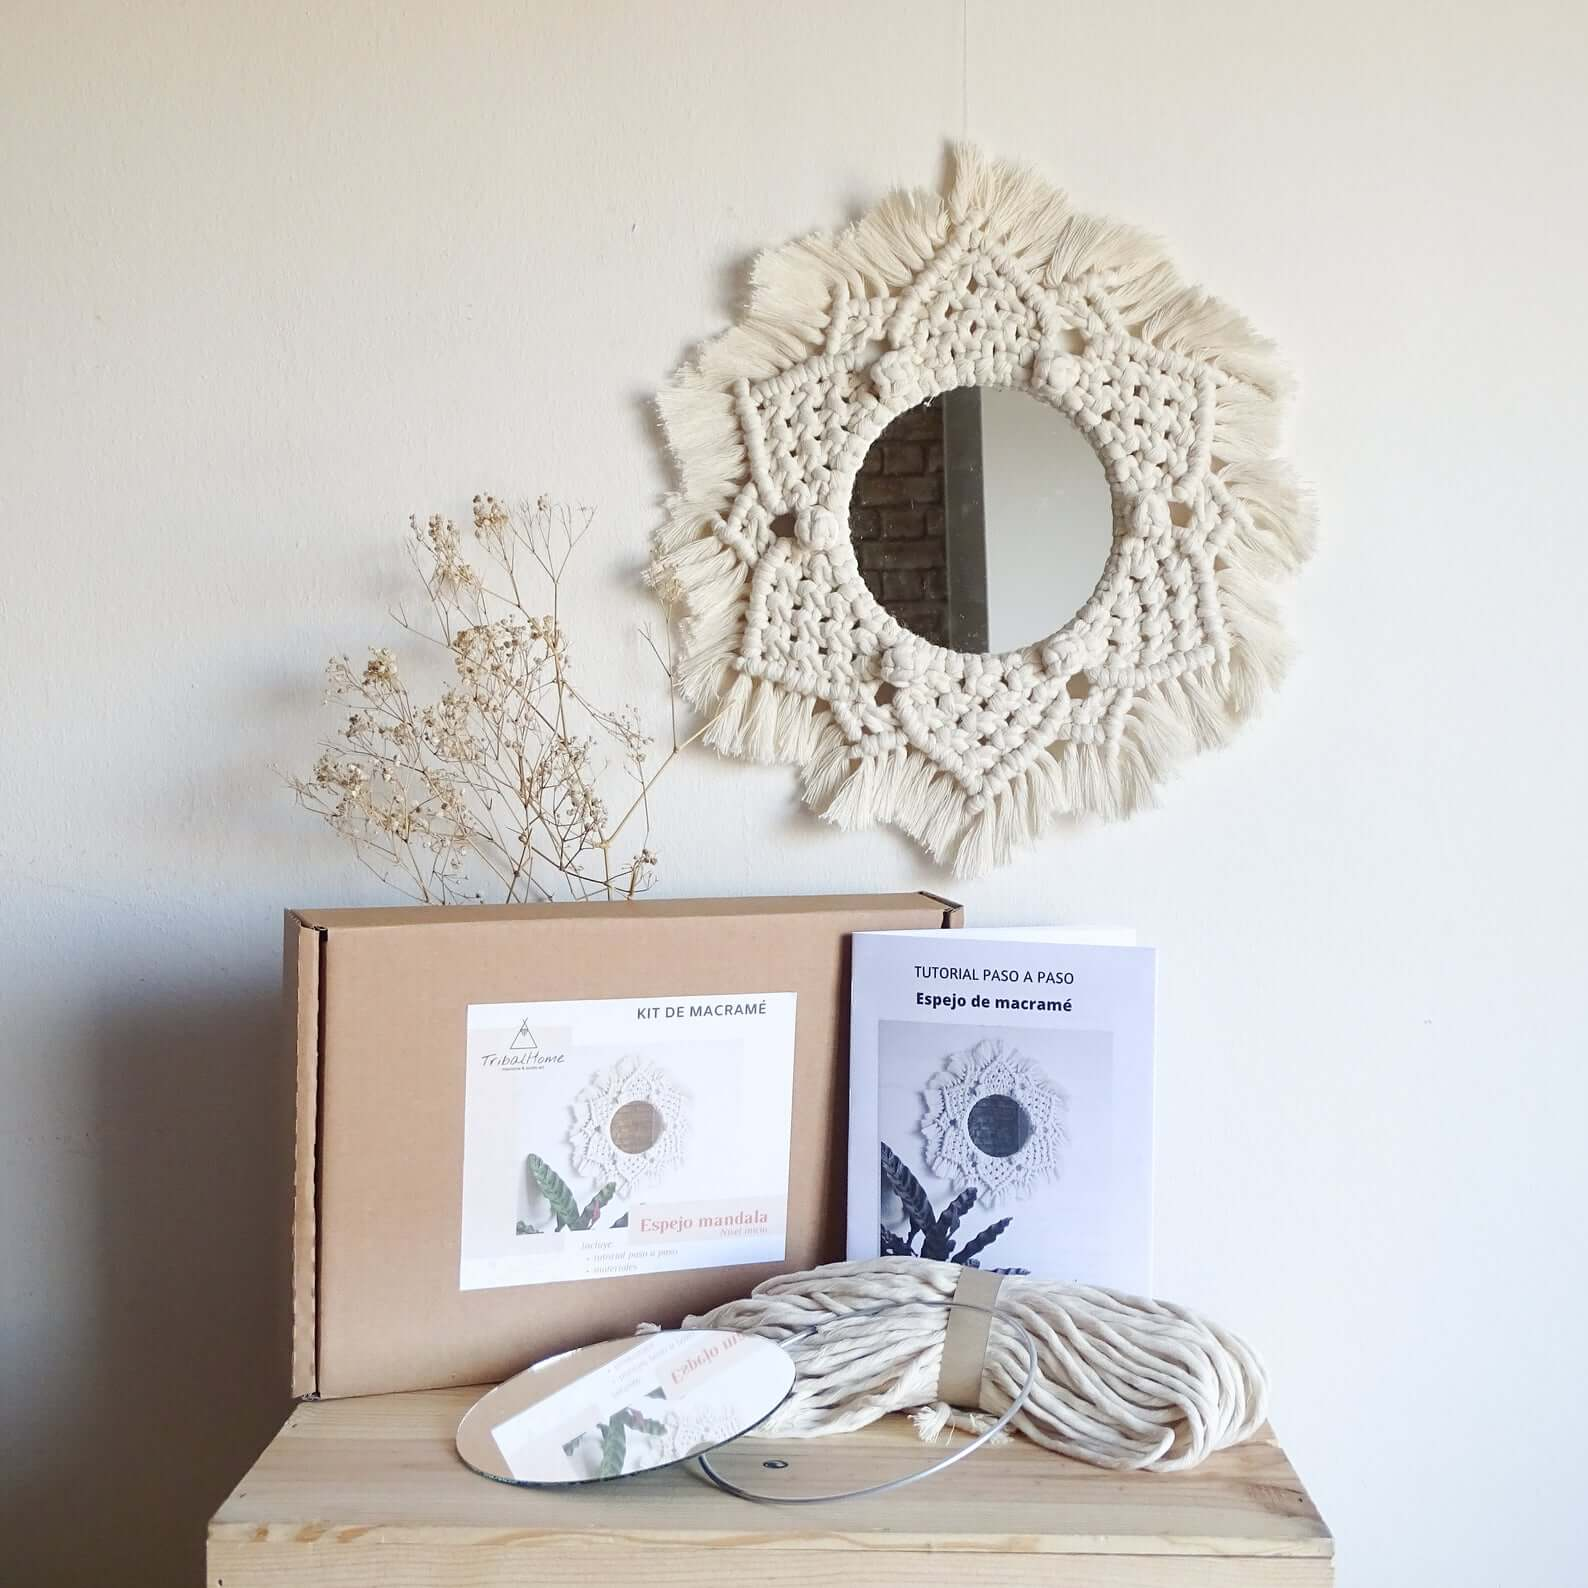 Shop With Small - Some Favorite Etsy Finds